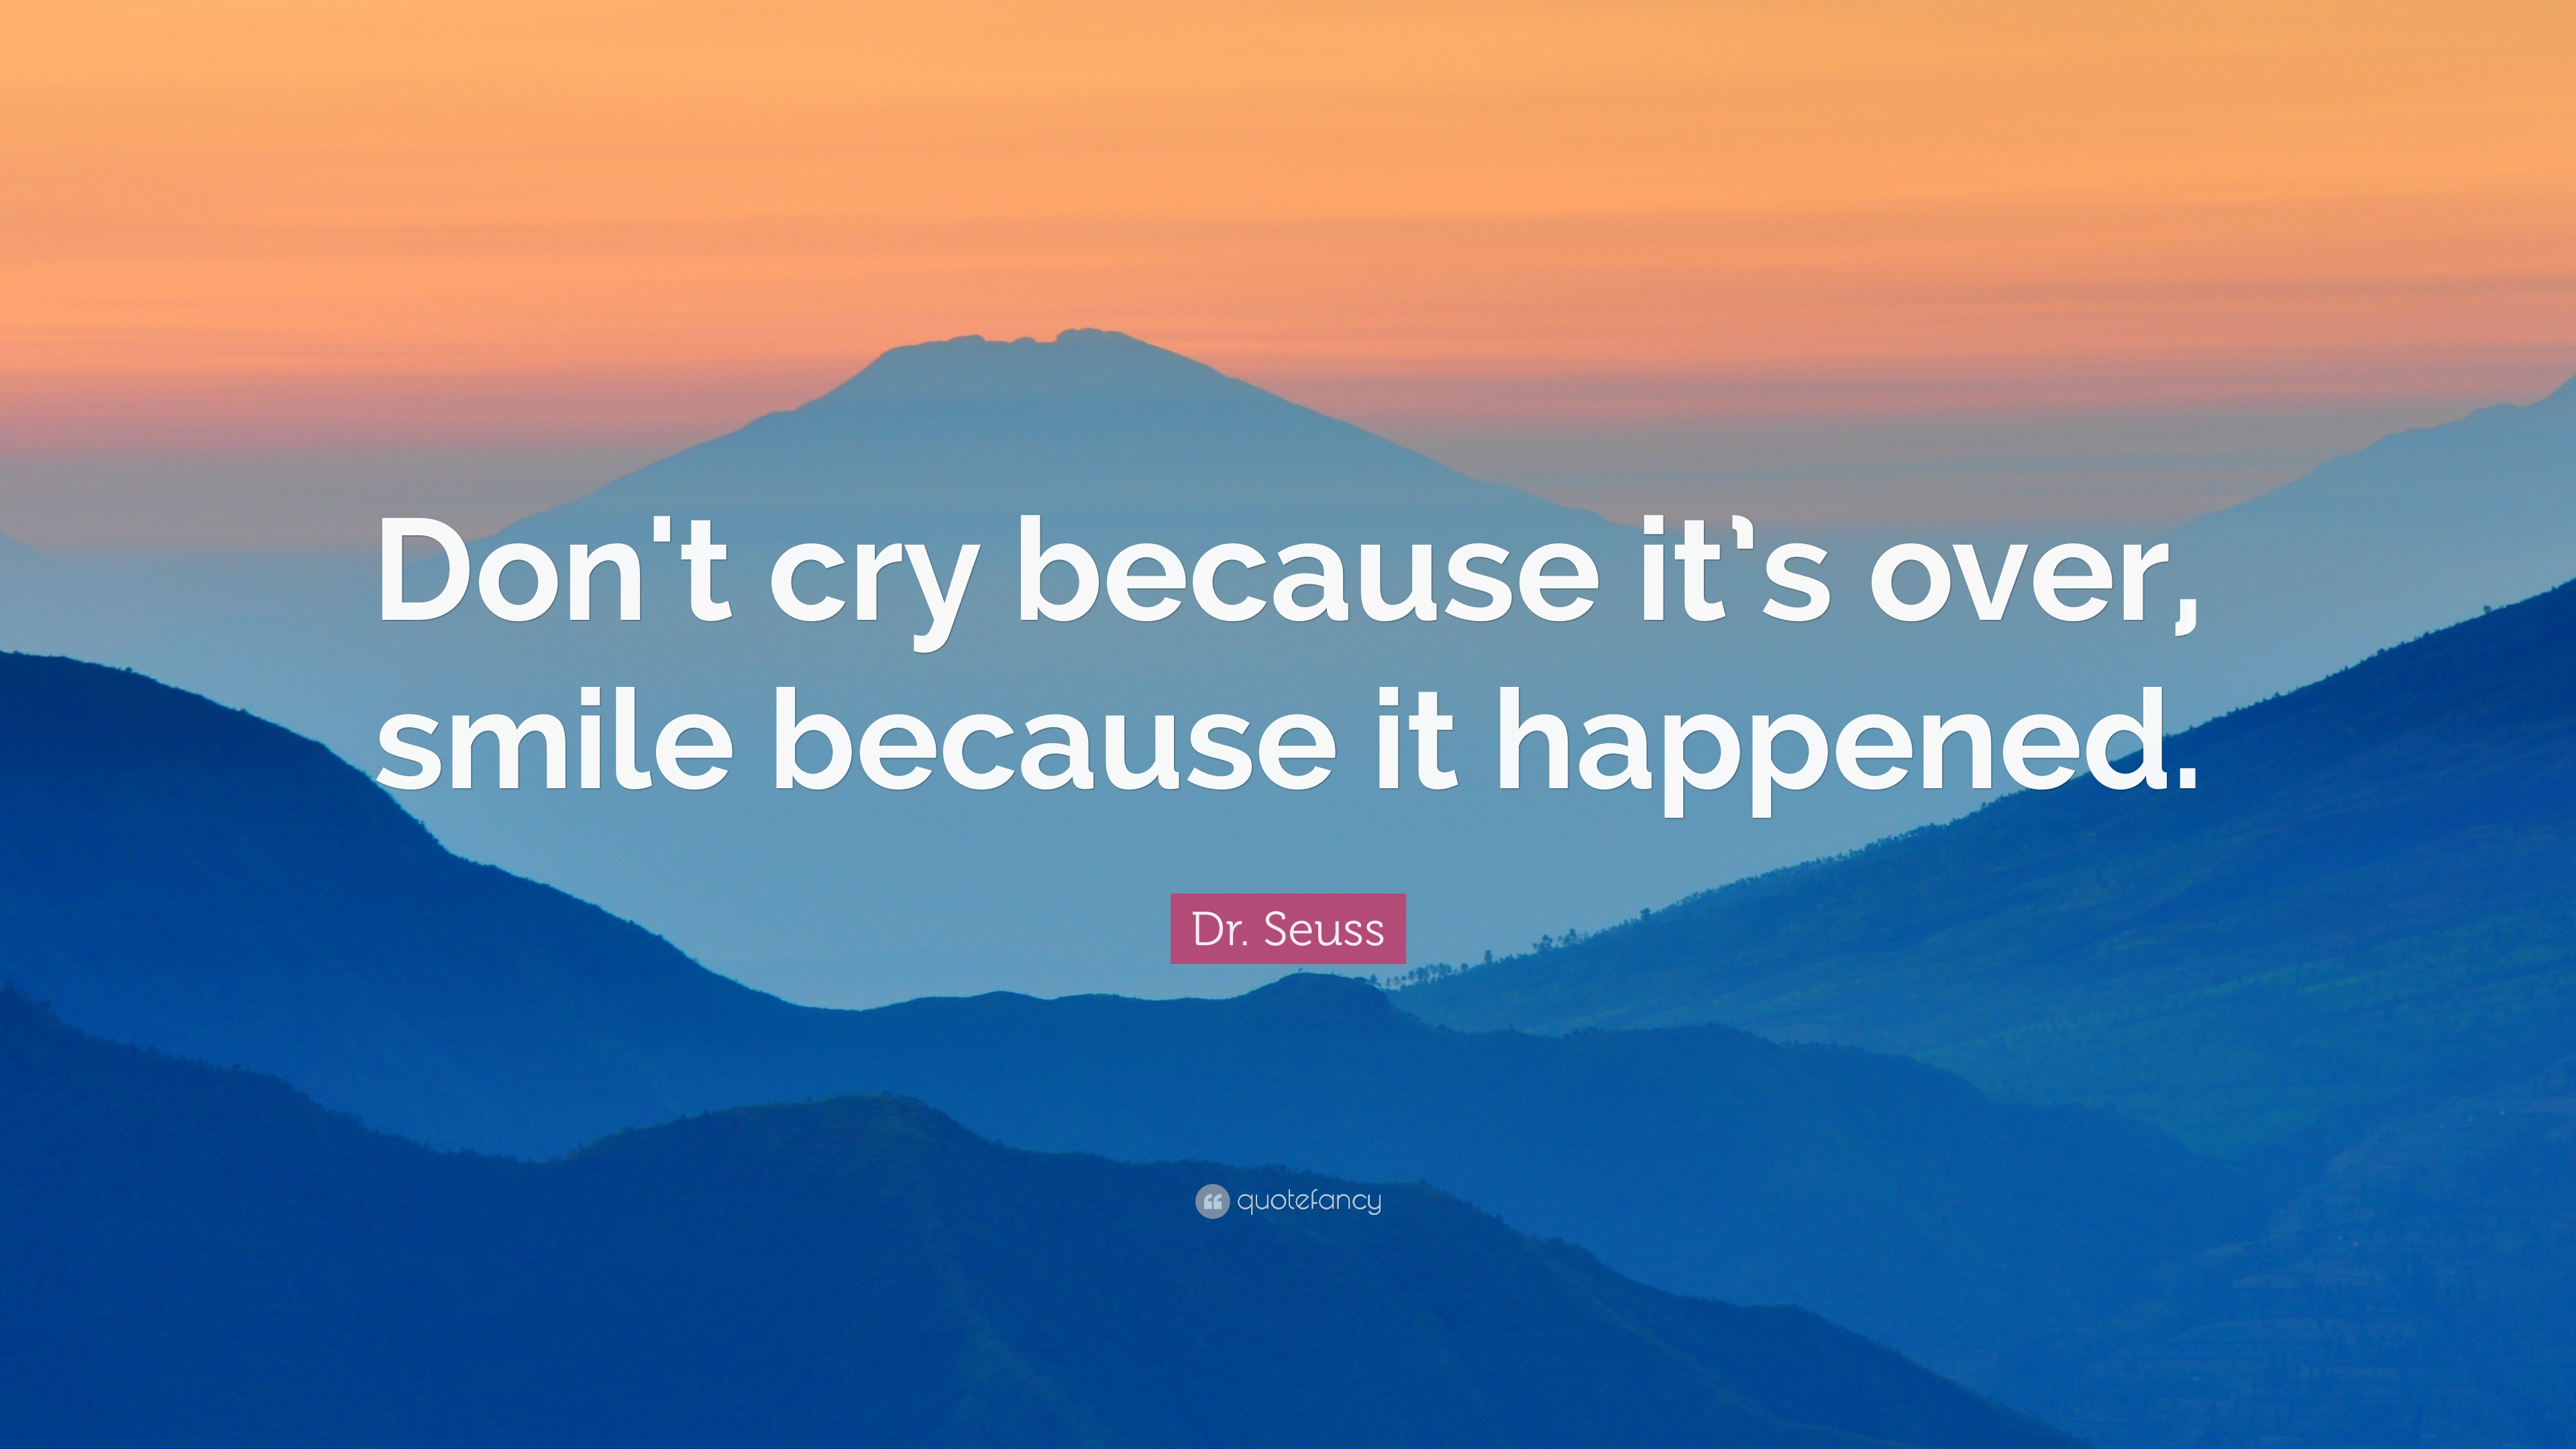 Dr. Seuss Quotes Don't Cry Because It Over